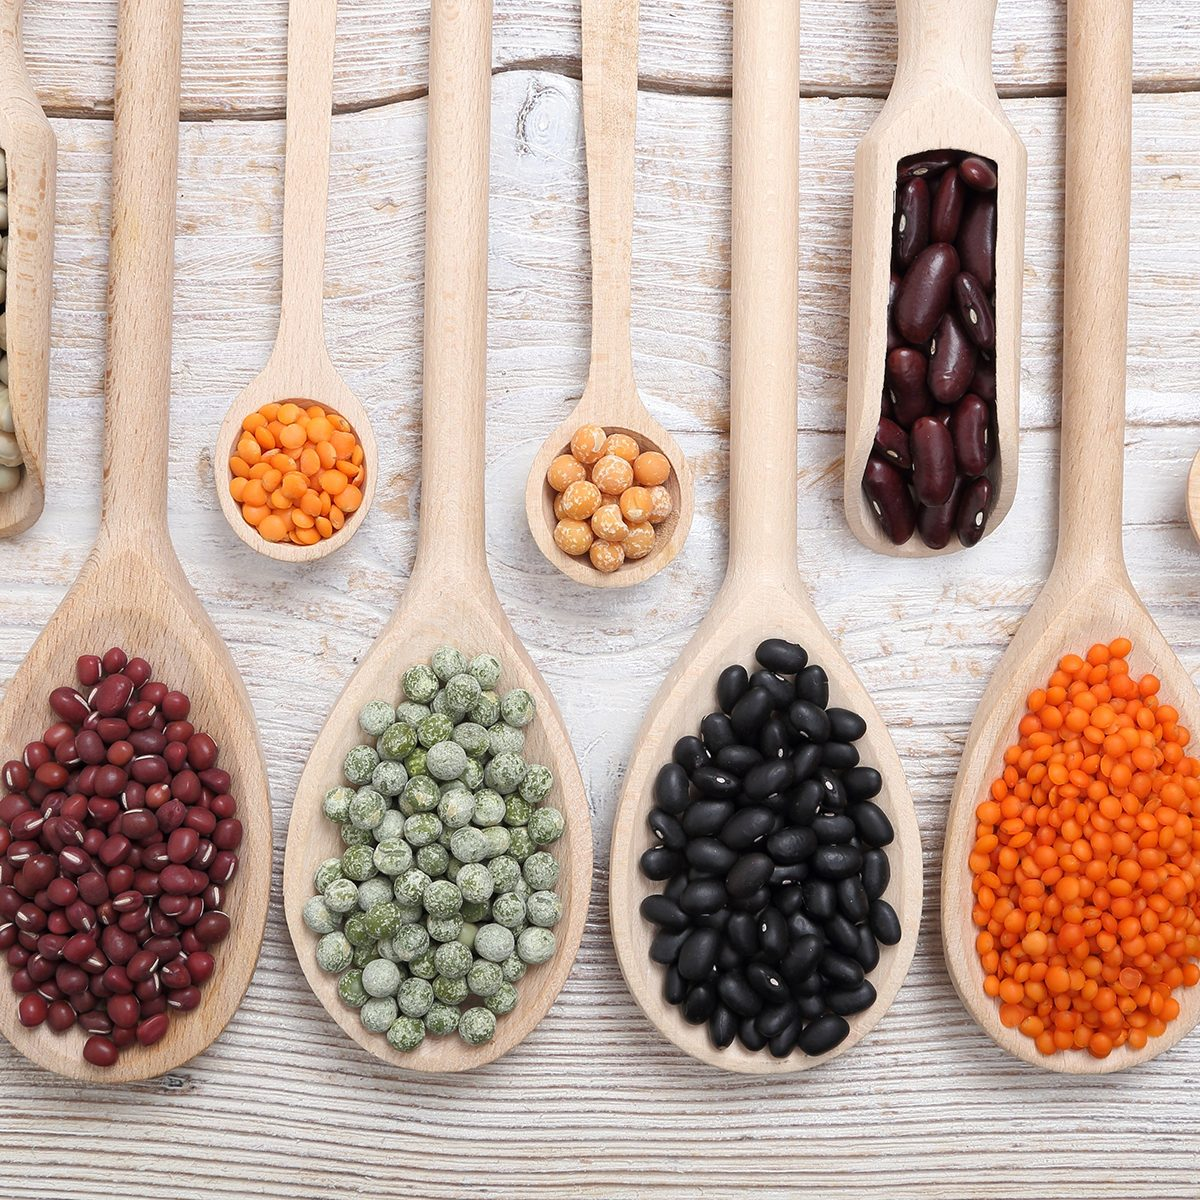 Different legumes on apoons